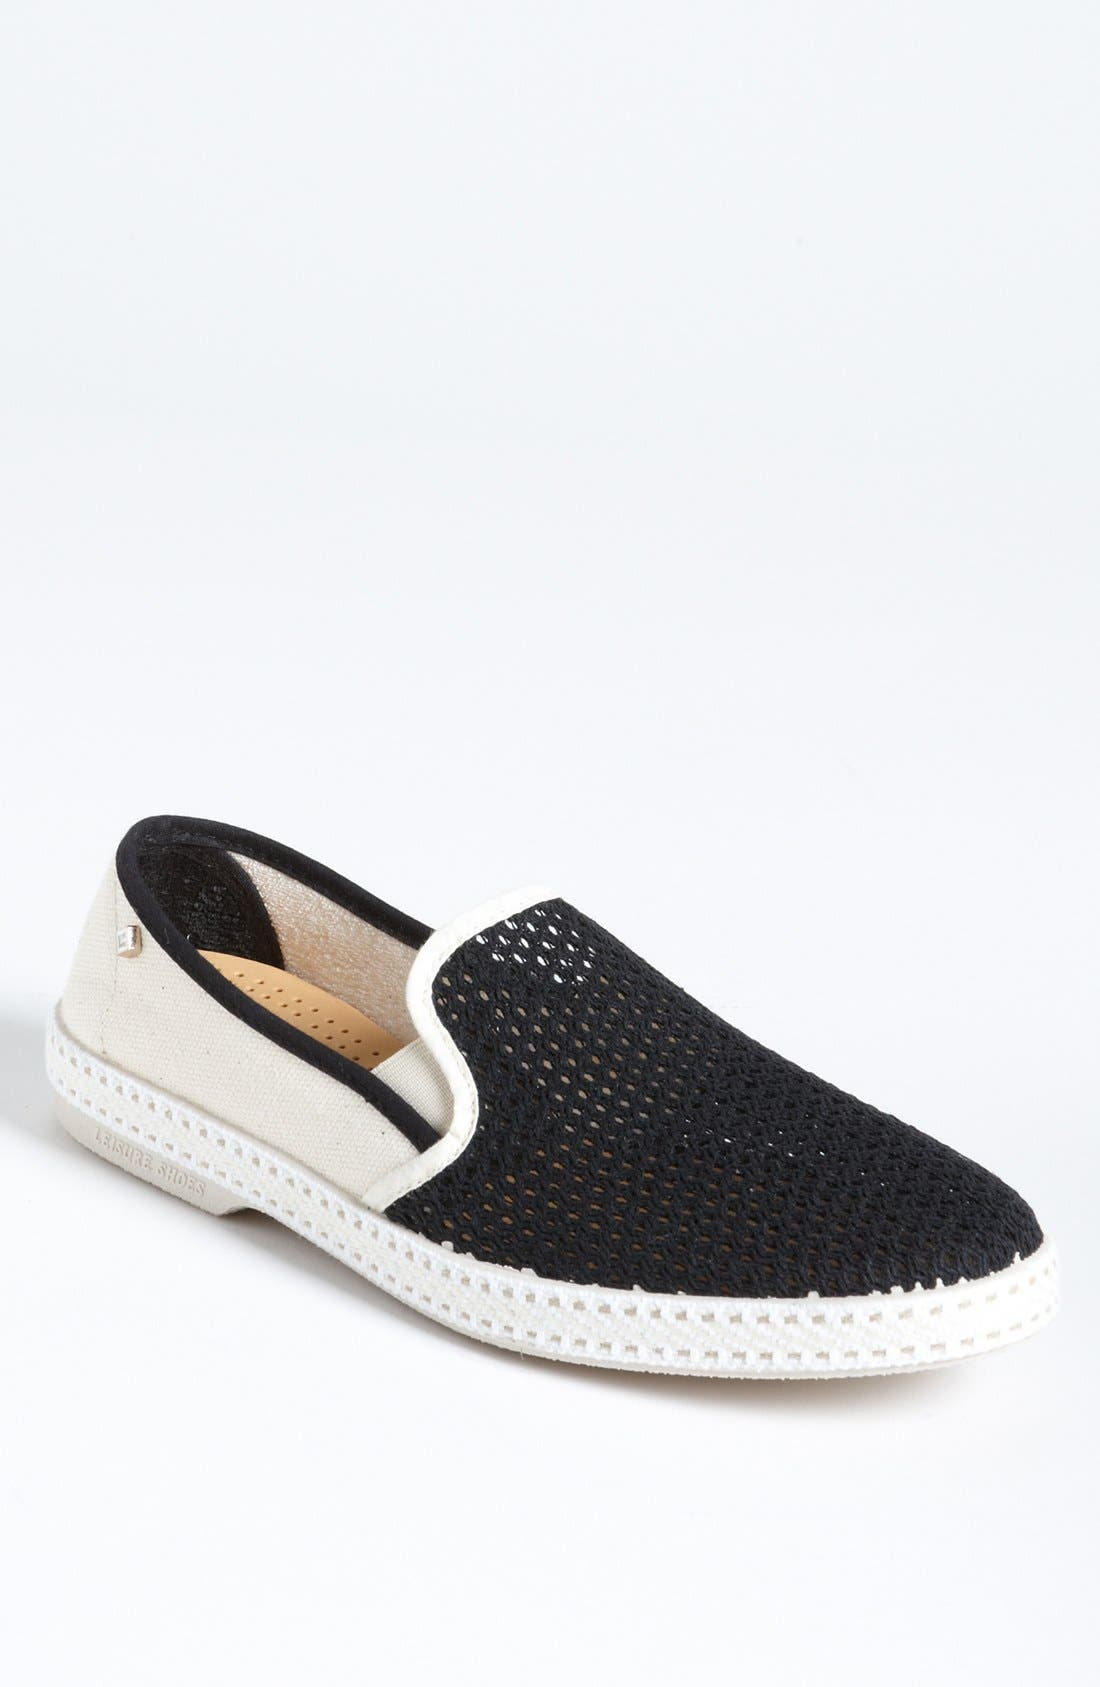 Alternate Image 1 Selected - Rivieras 'Nervous Wreck' Slip-On